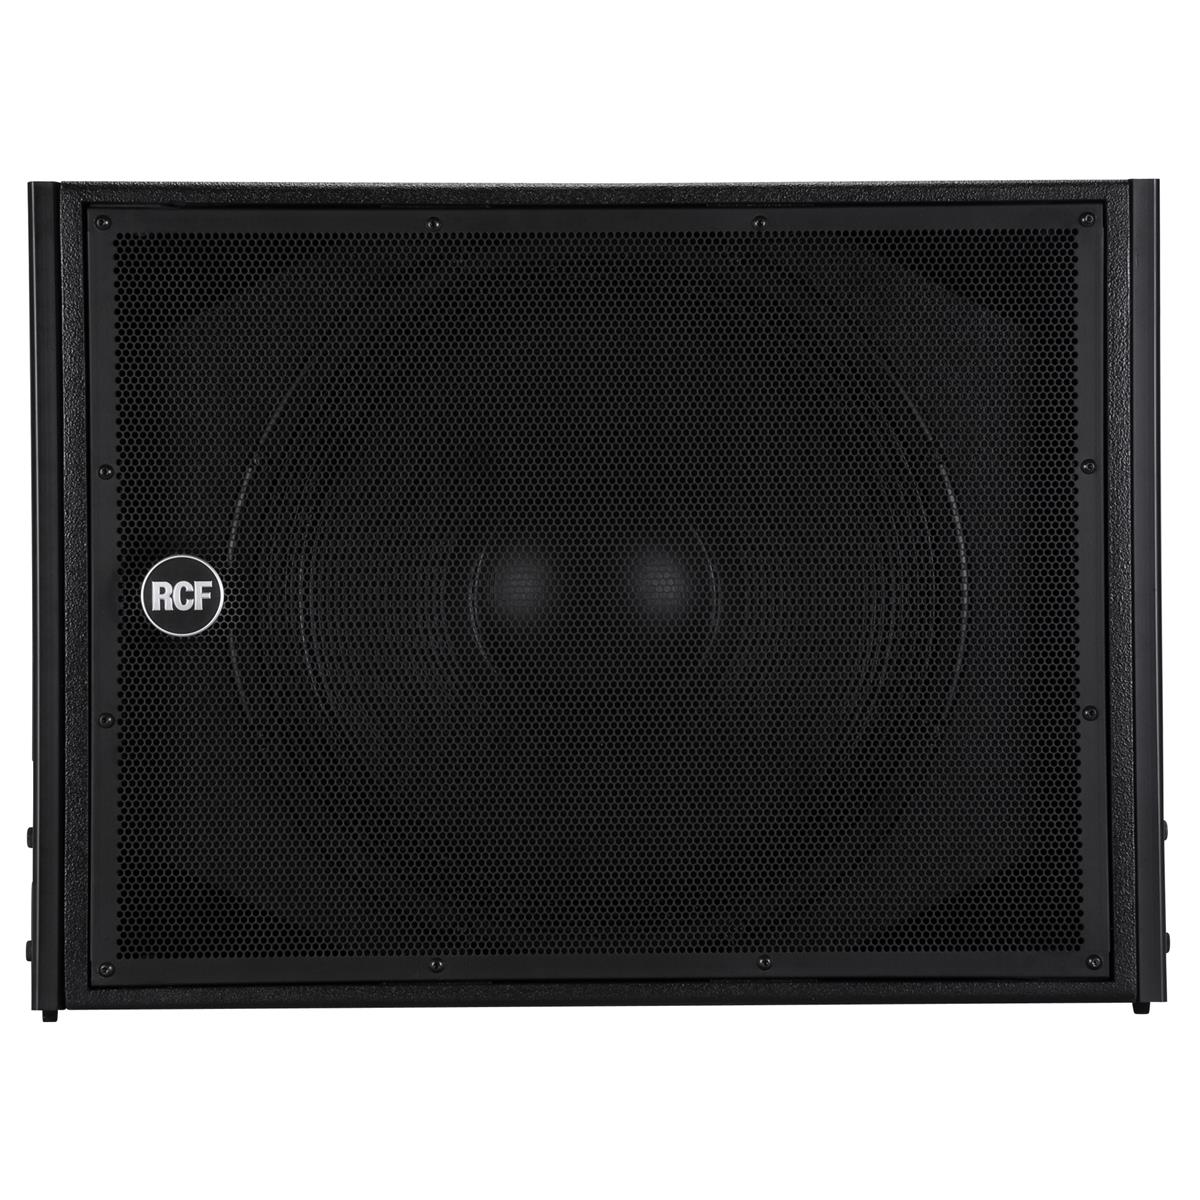 RCF Active line array subwoofer for HDL20, 18in, 1000Wrms, 2